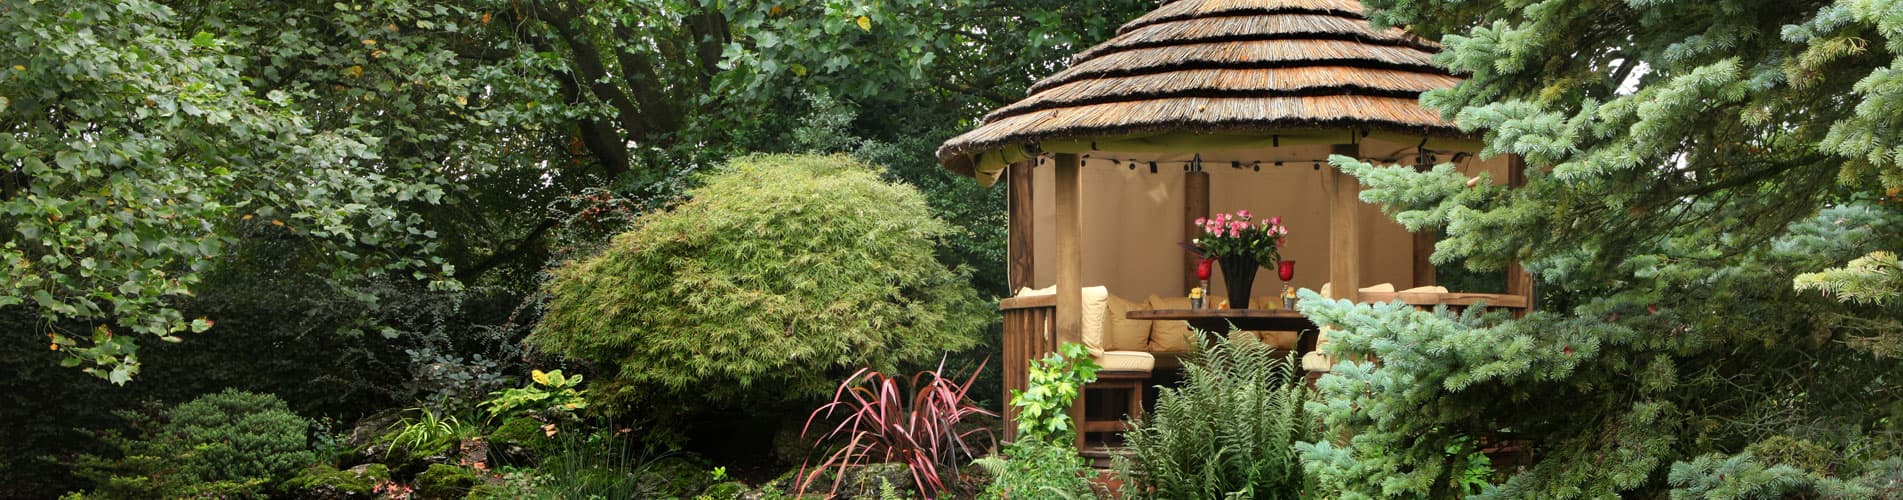 Edward Luxury Wooden Gazebo